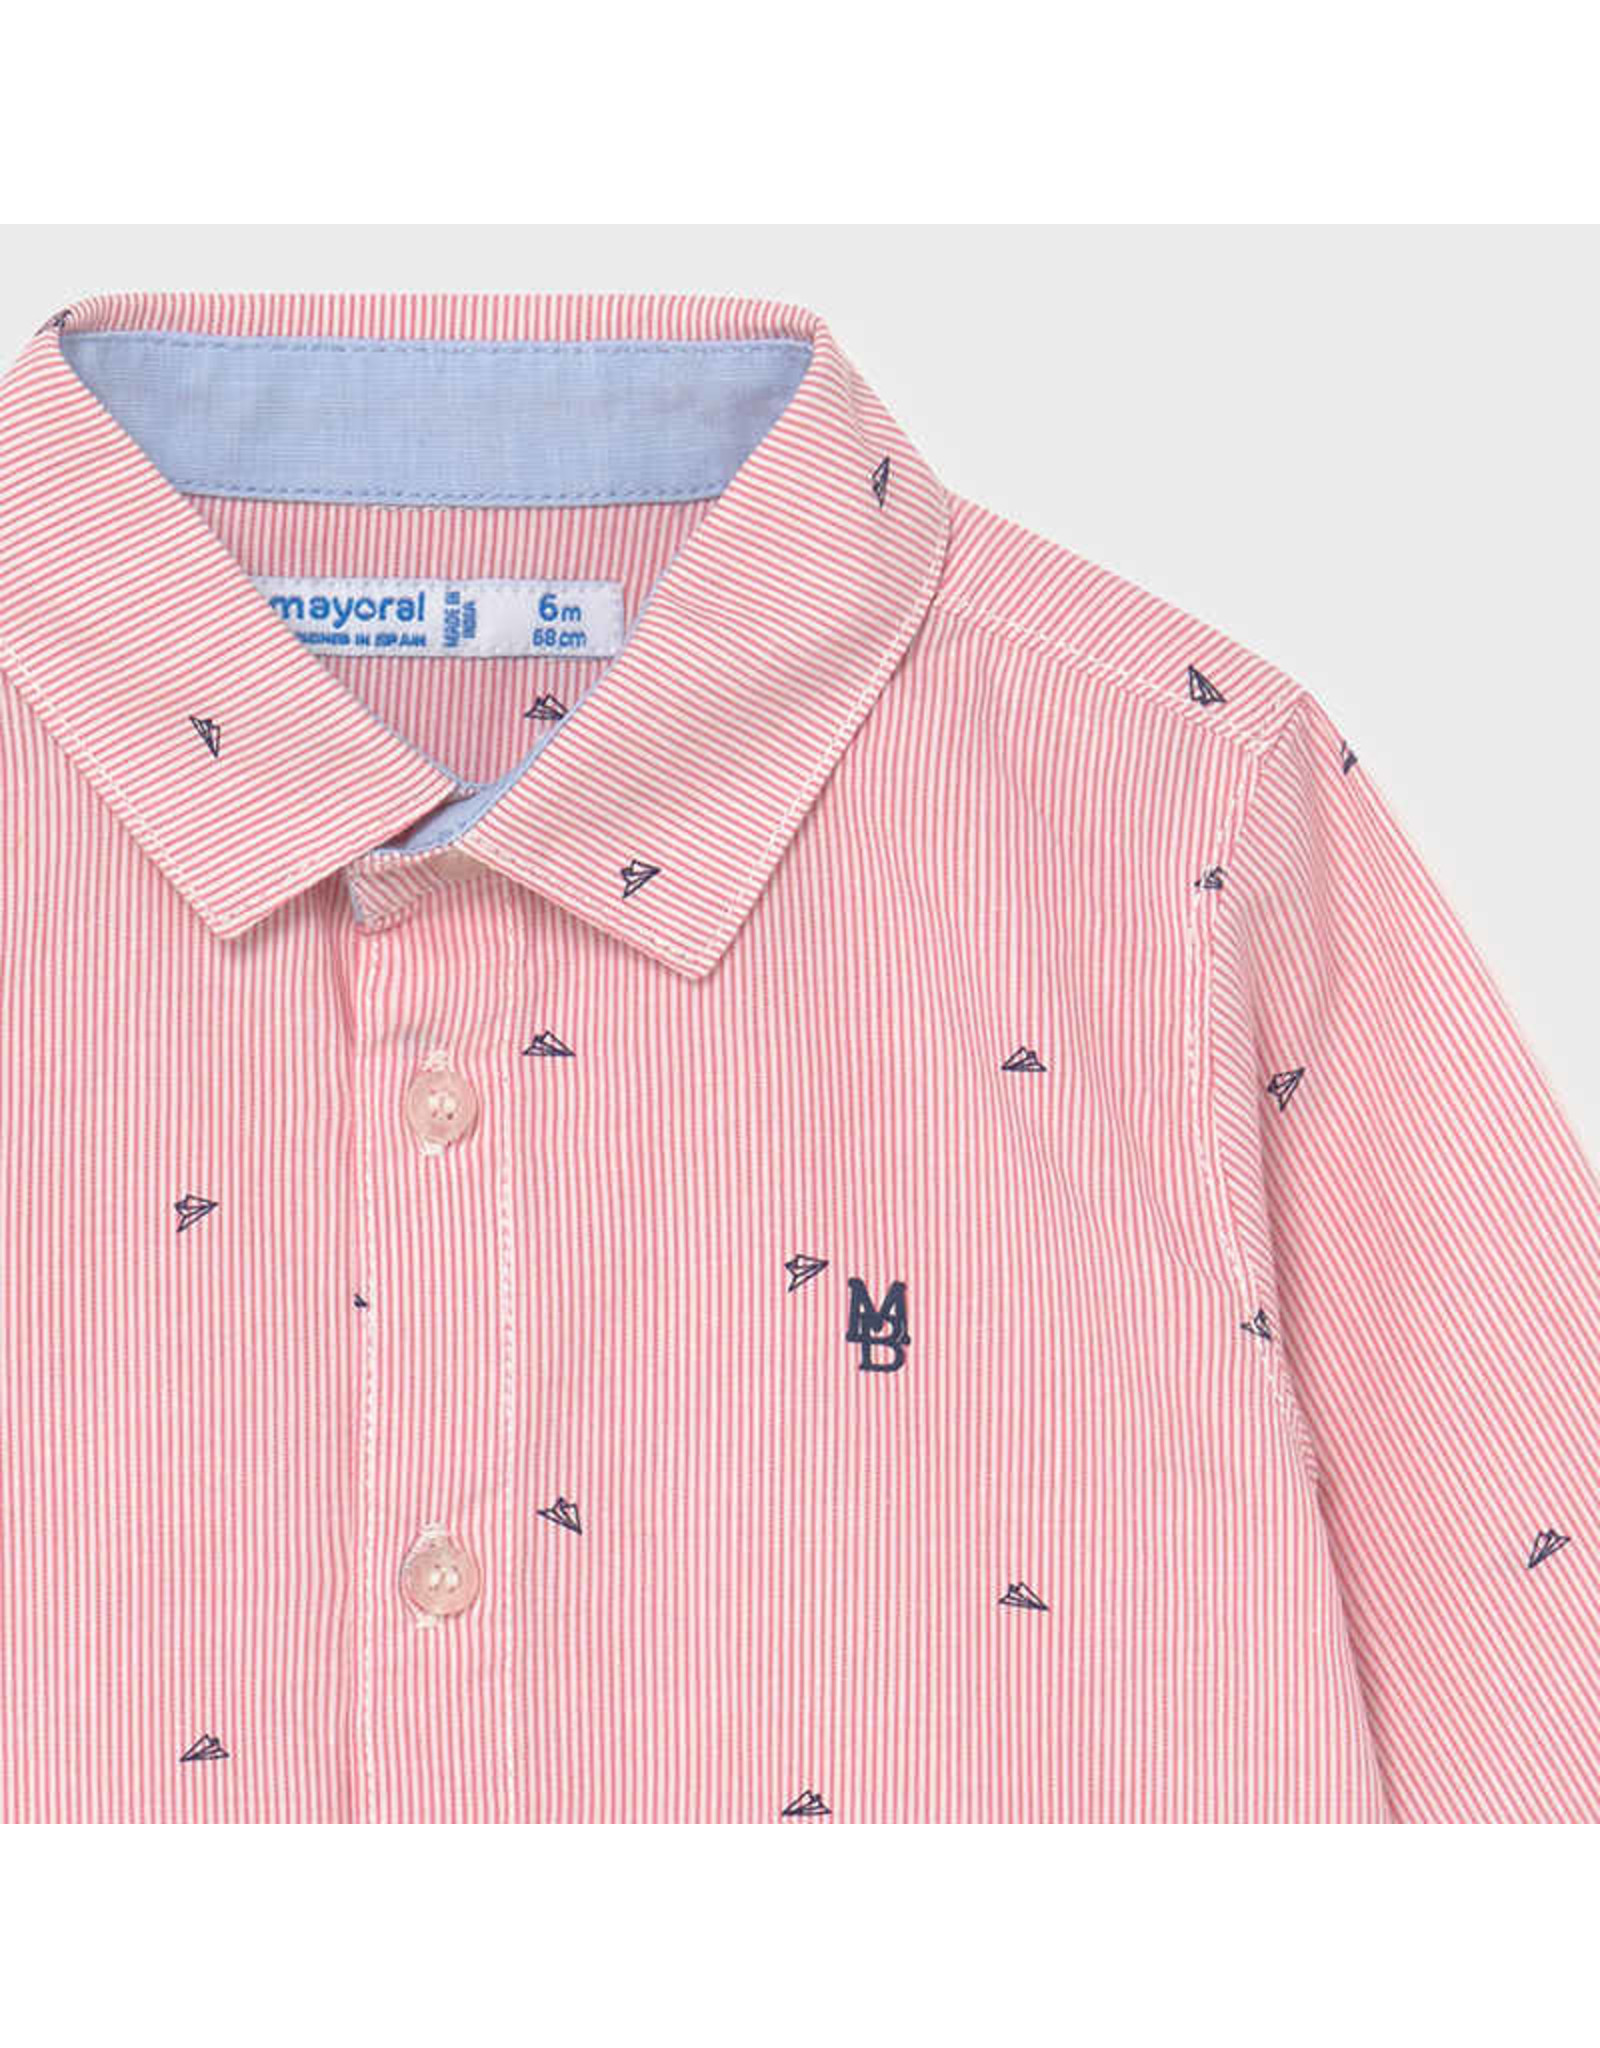 Mayoral Long Sleeve Button Up Shirt